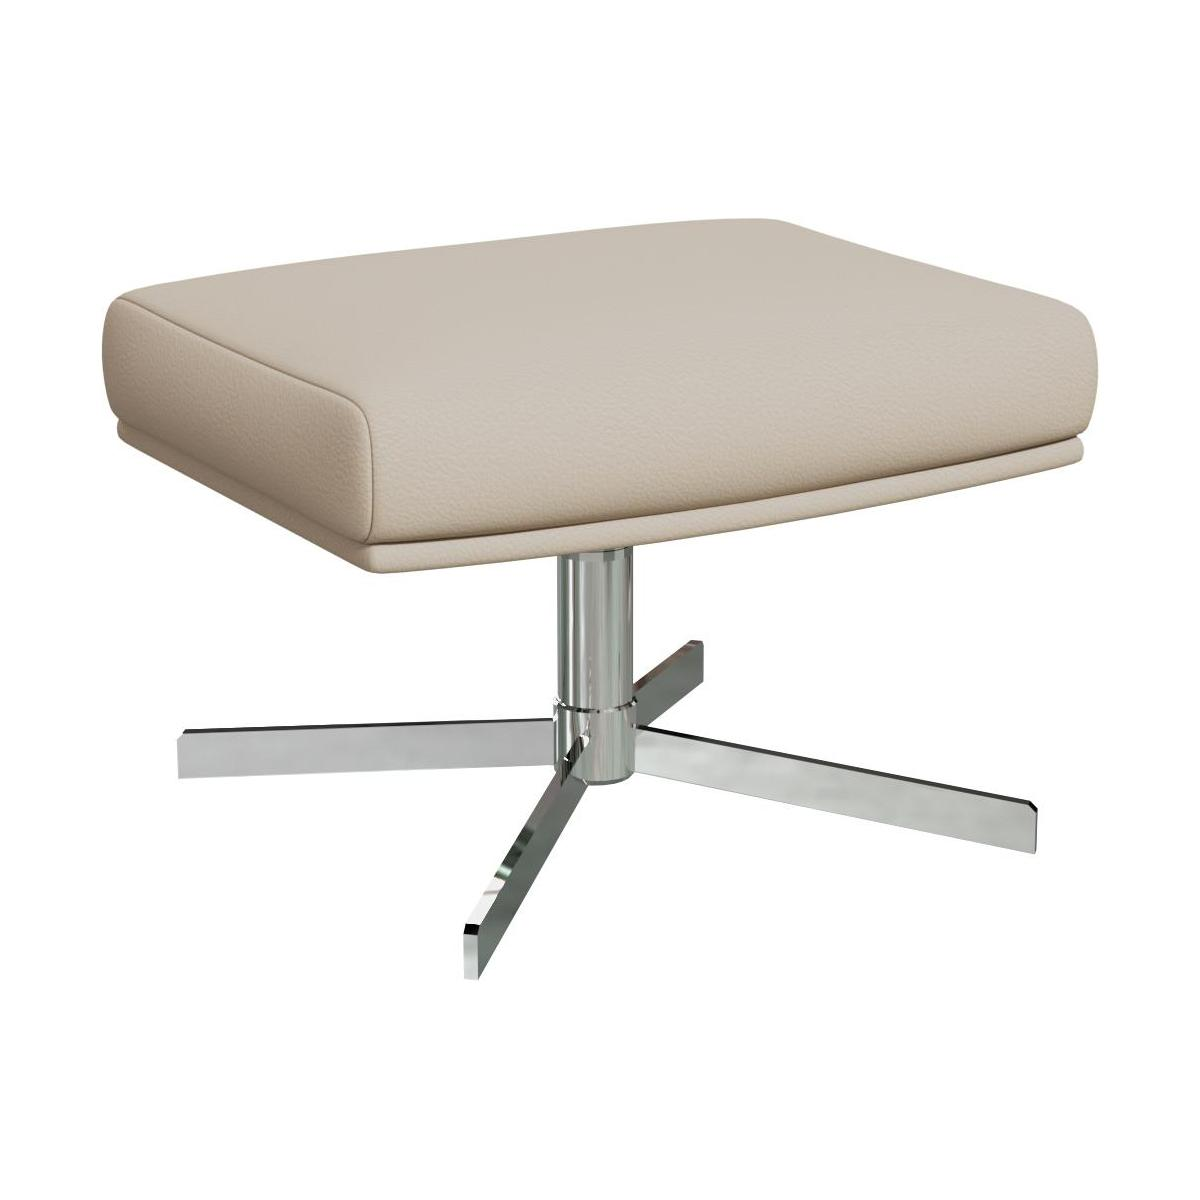 Footstool in Savoy semi-aniline leather, off white with metal cross leg